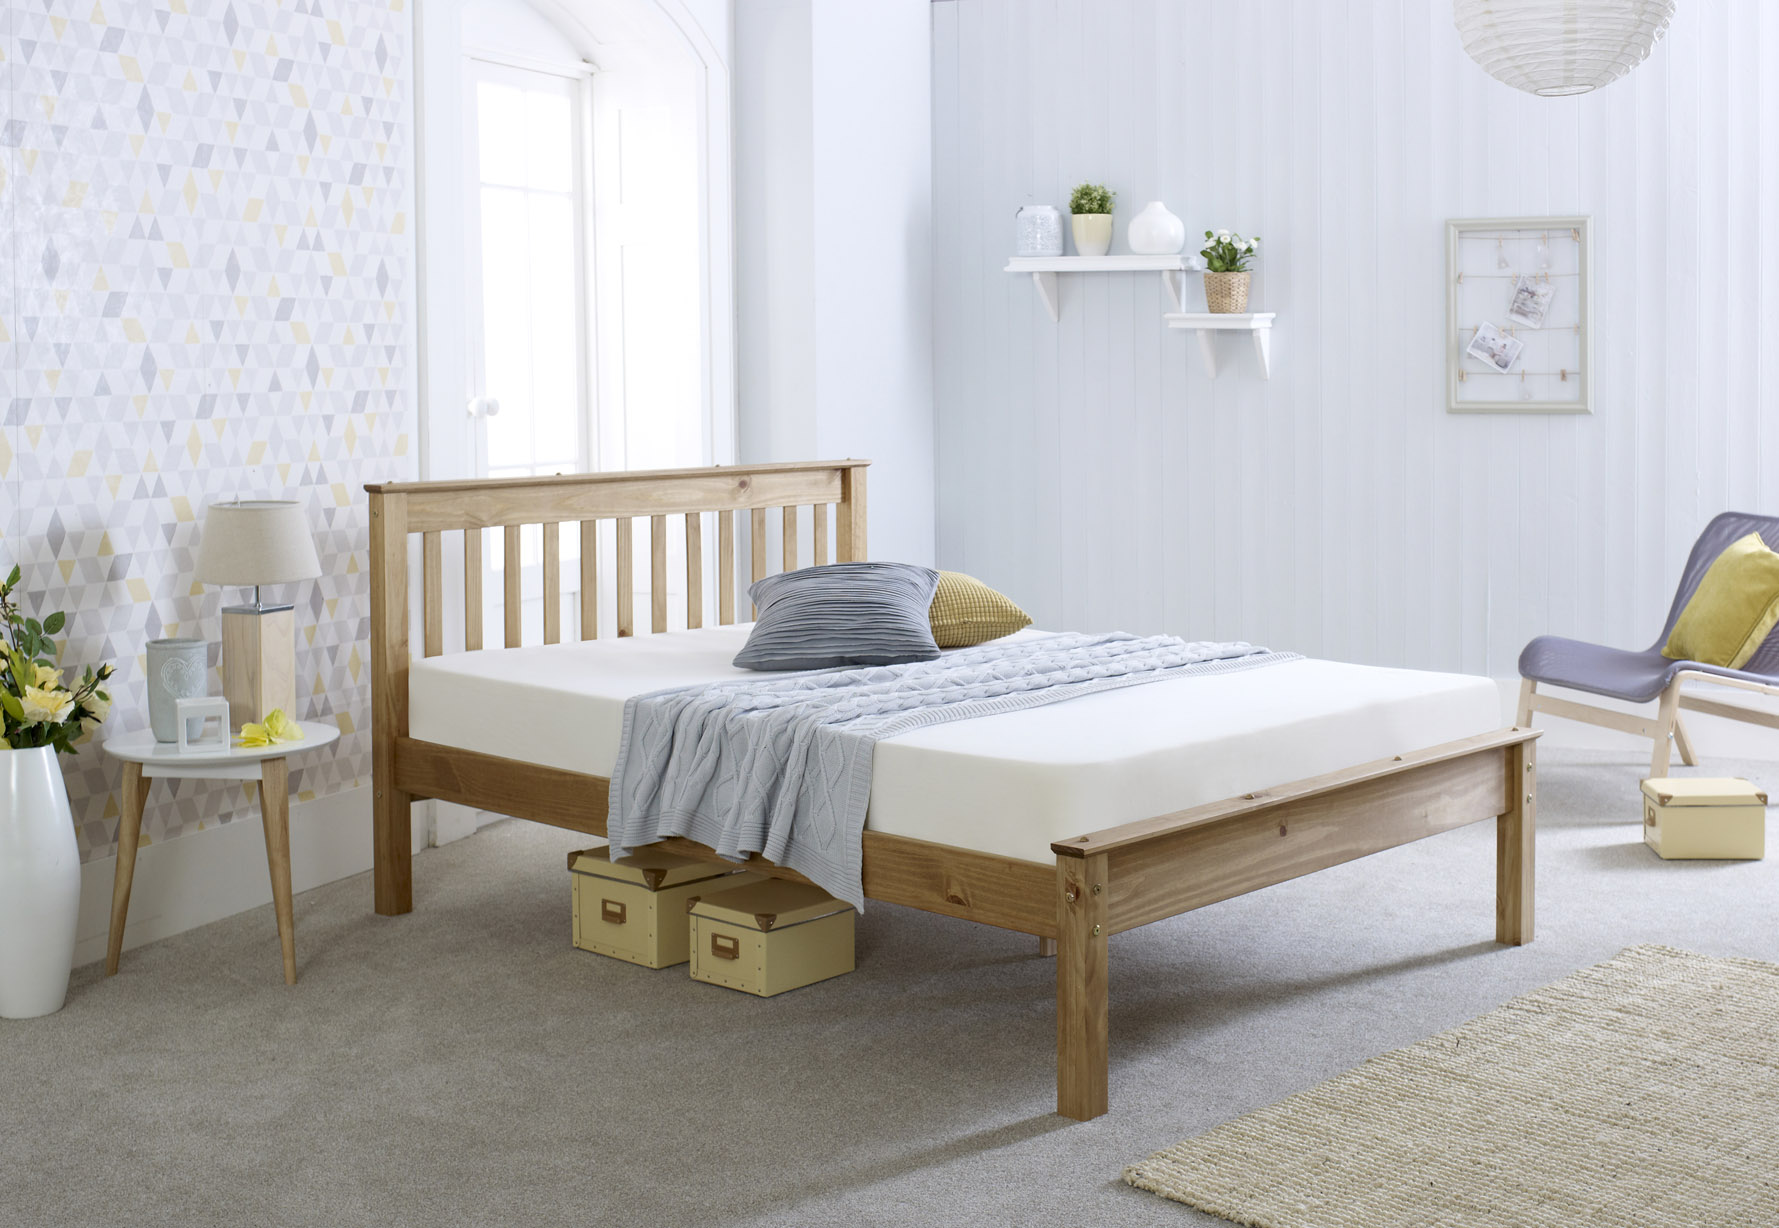 4'6 Chester Bed